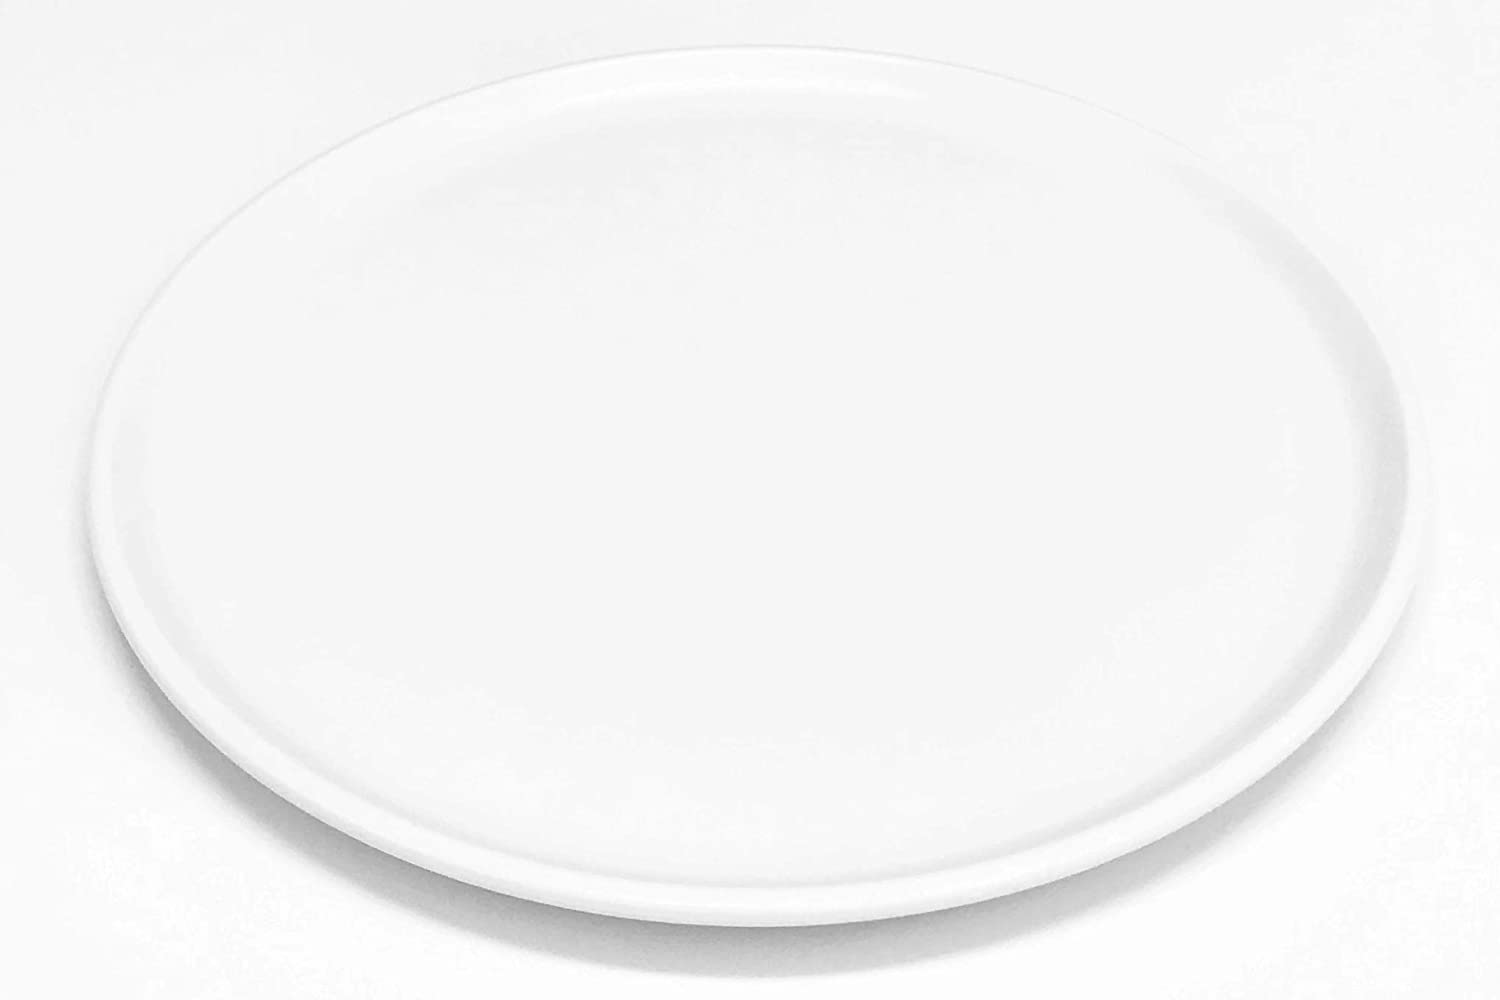 OEM Sharp Microwave White Plate Turntable Shipped with R1871, R-1871, R1872, R-1872, R1874, R-1874